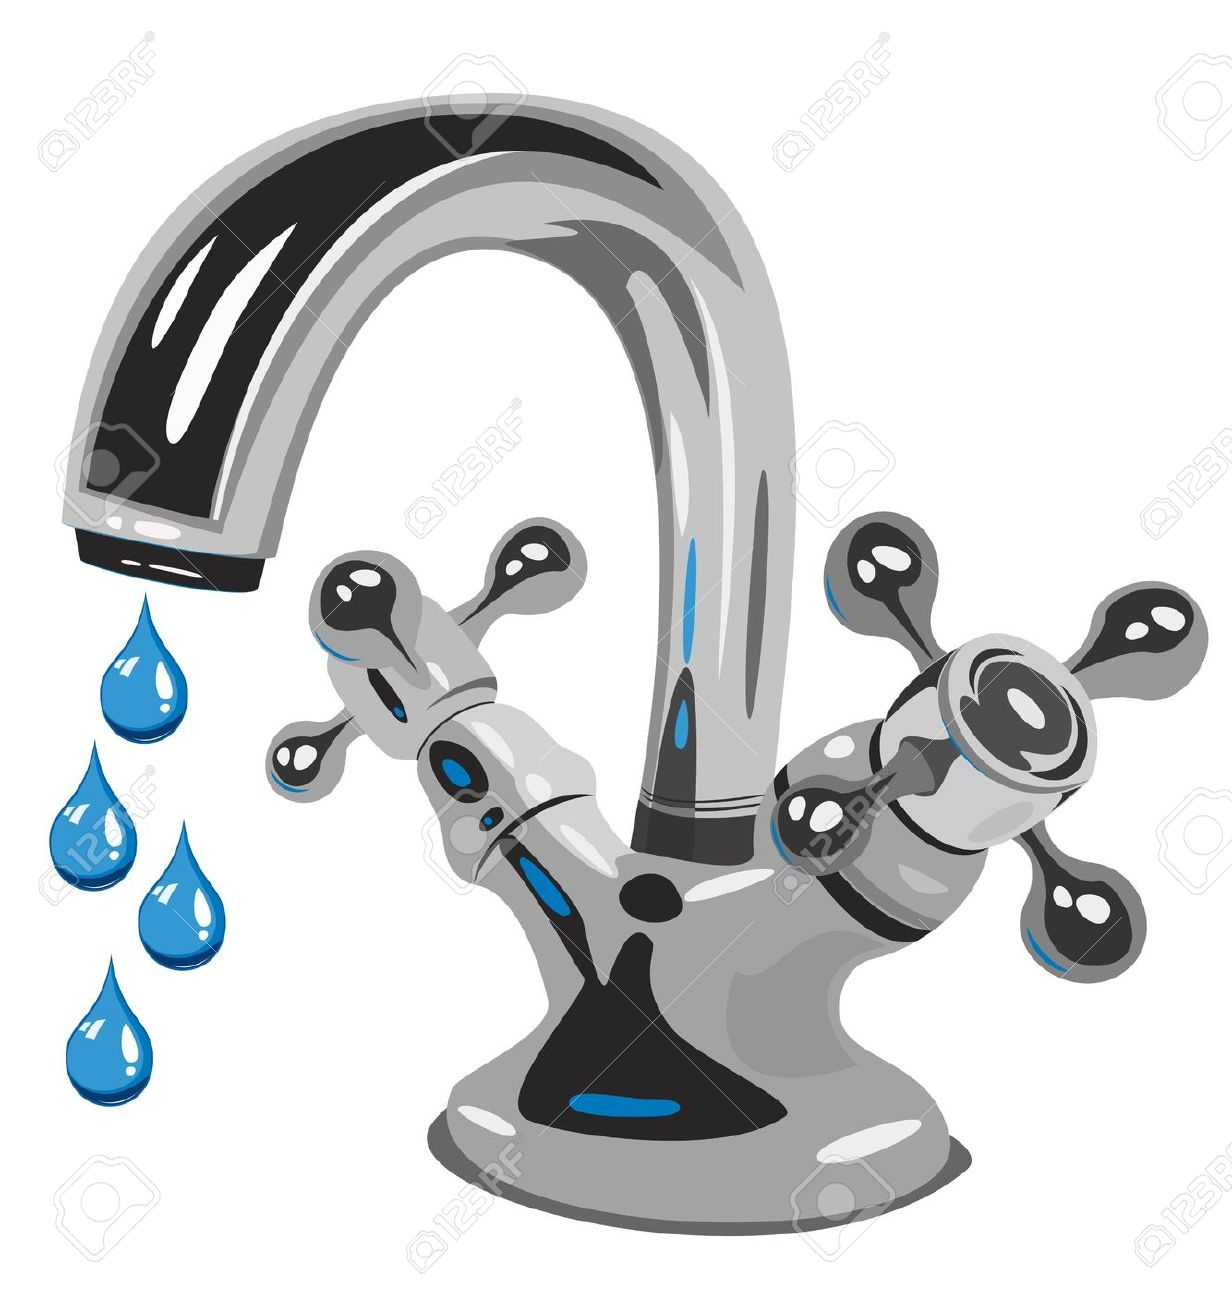 Low Flow Bathtub Faucets Clip Art.